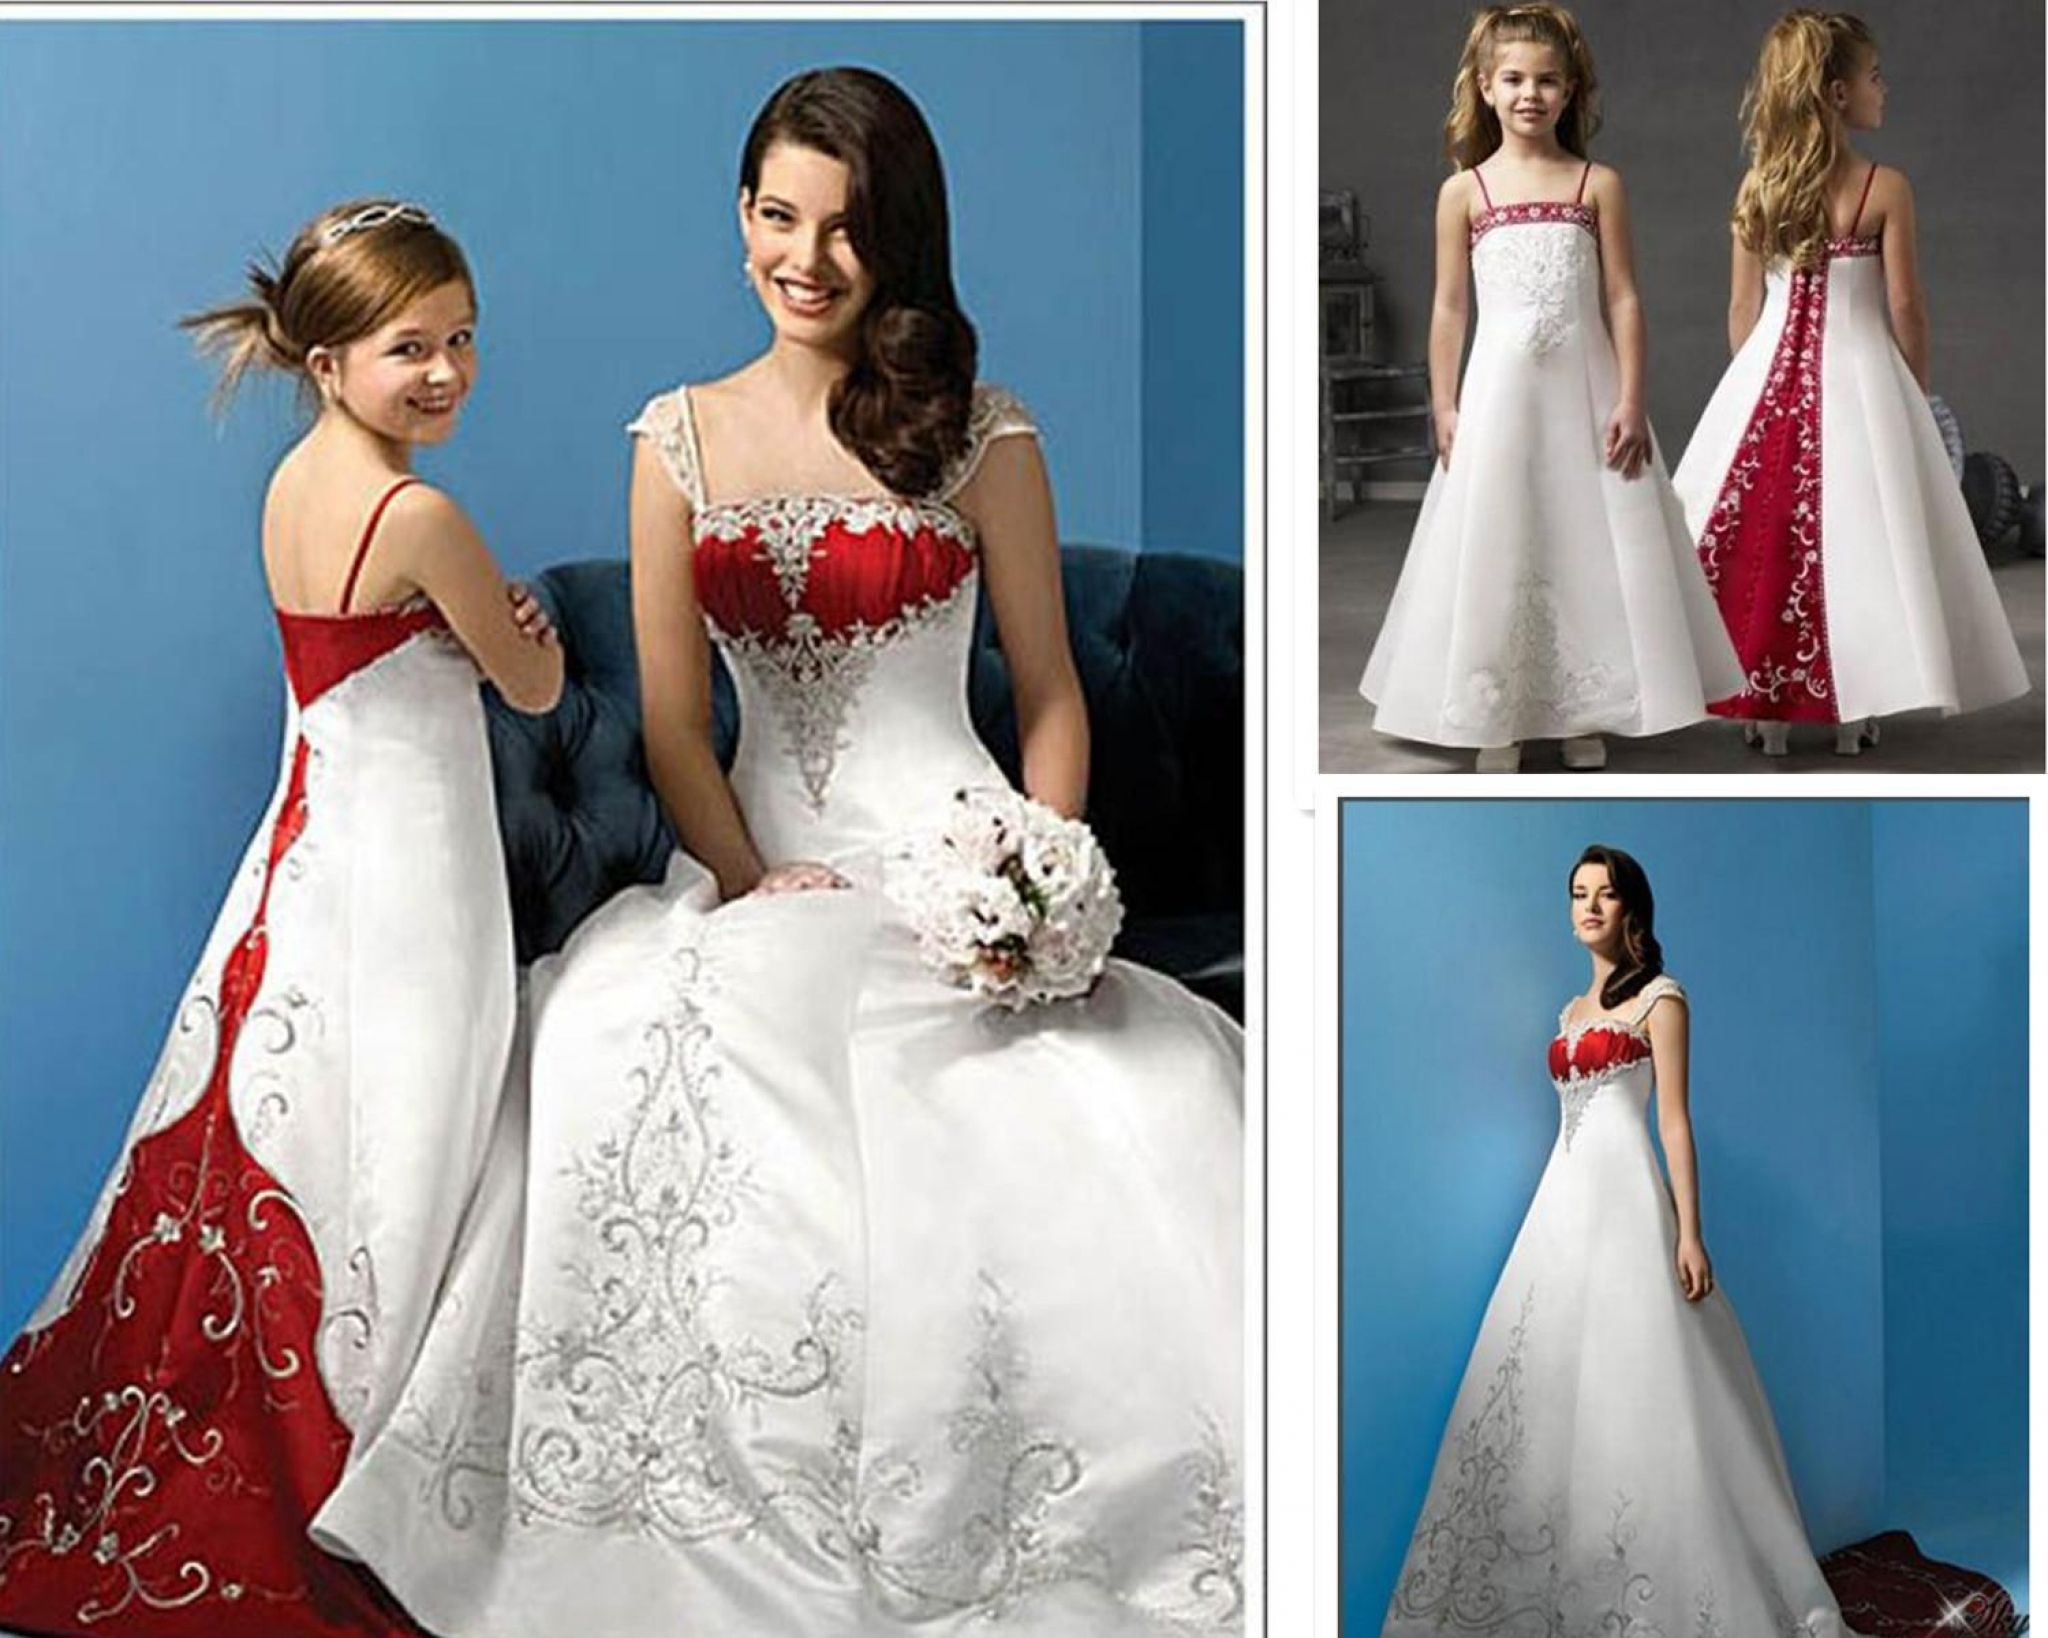 Red Maternity Wedding Dresses Informal For Older Brides Check More At Http